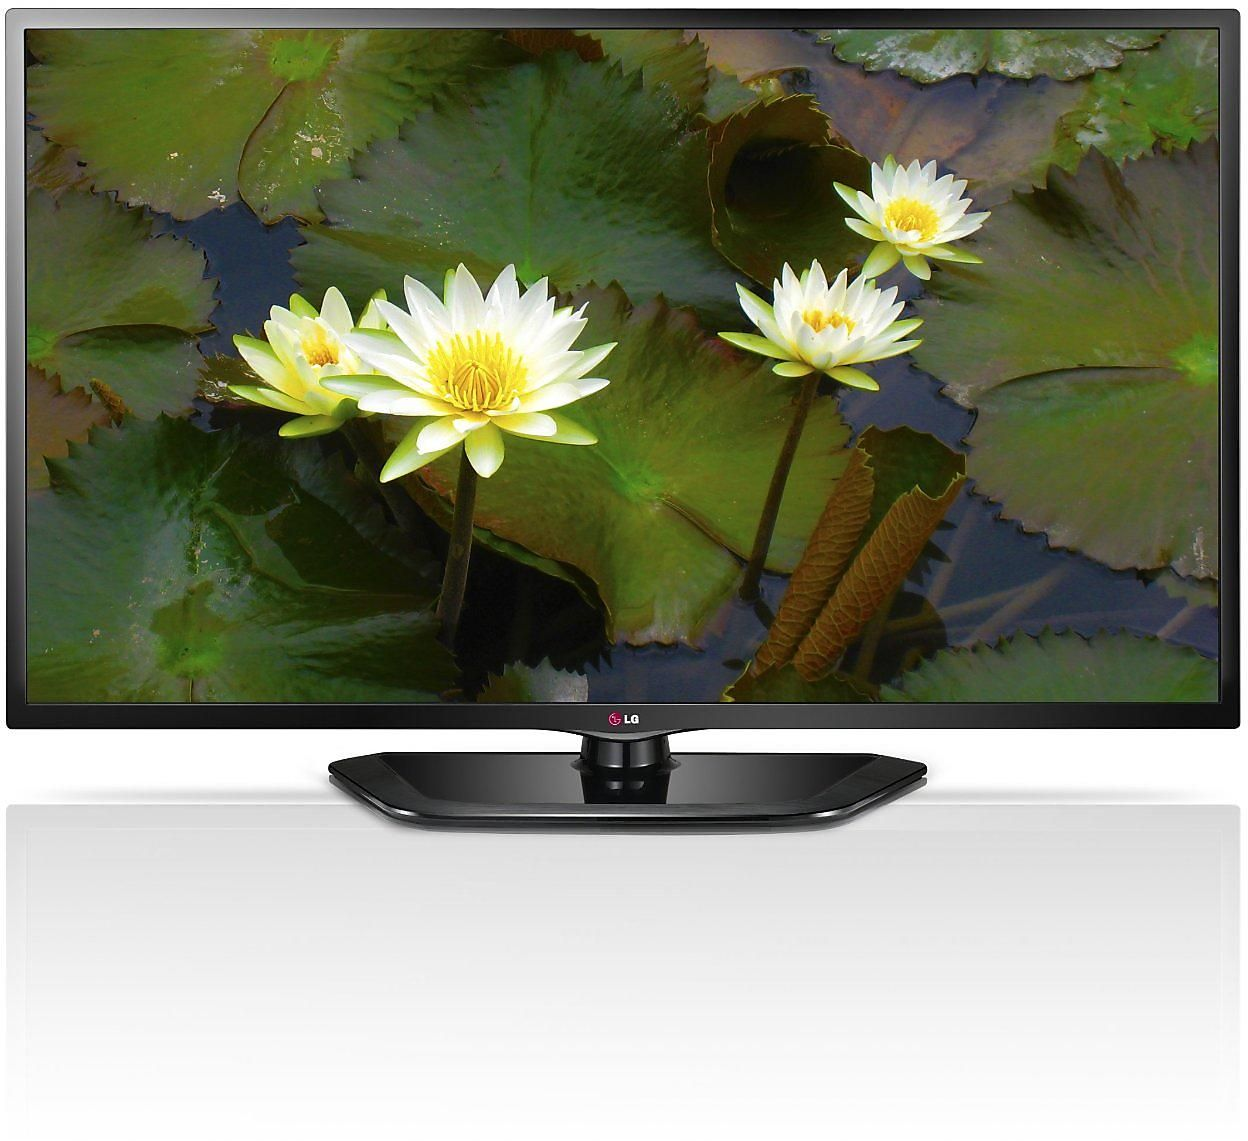 On Sale Now Lg Electronics 50ln5400 50 Inch 1080p 120hz Led Tv Lg Electronics Led Tv Lcd Tv